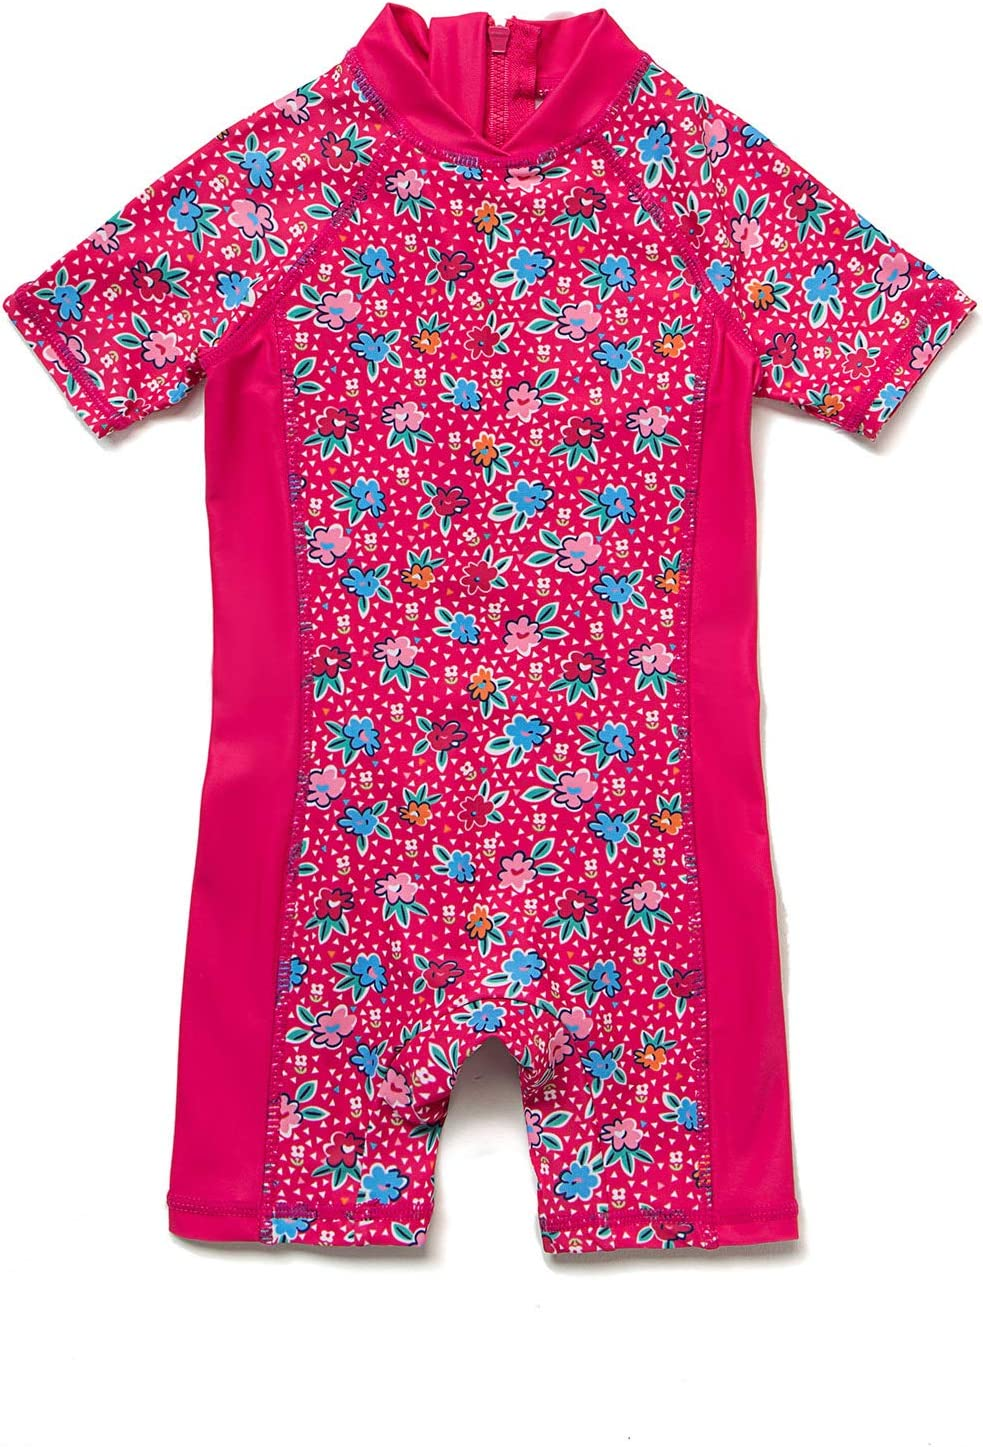 Baby Girls Sunsuit UPF 50+ Sun Protection One Pieces Short Sleeves Swimwear with Sun Hat(Mei Red Flowers,24 36Months)